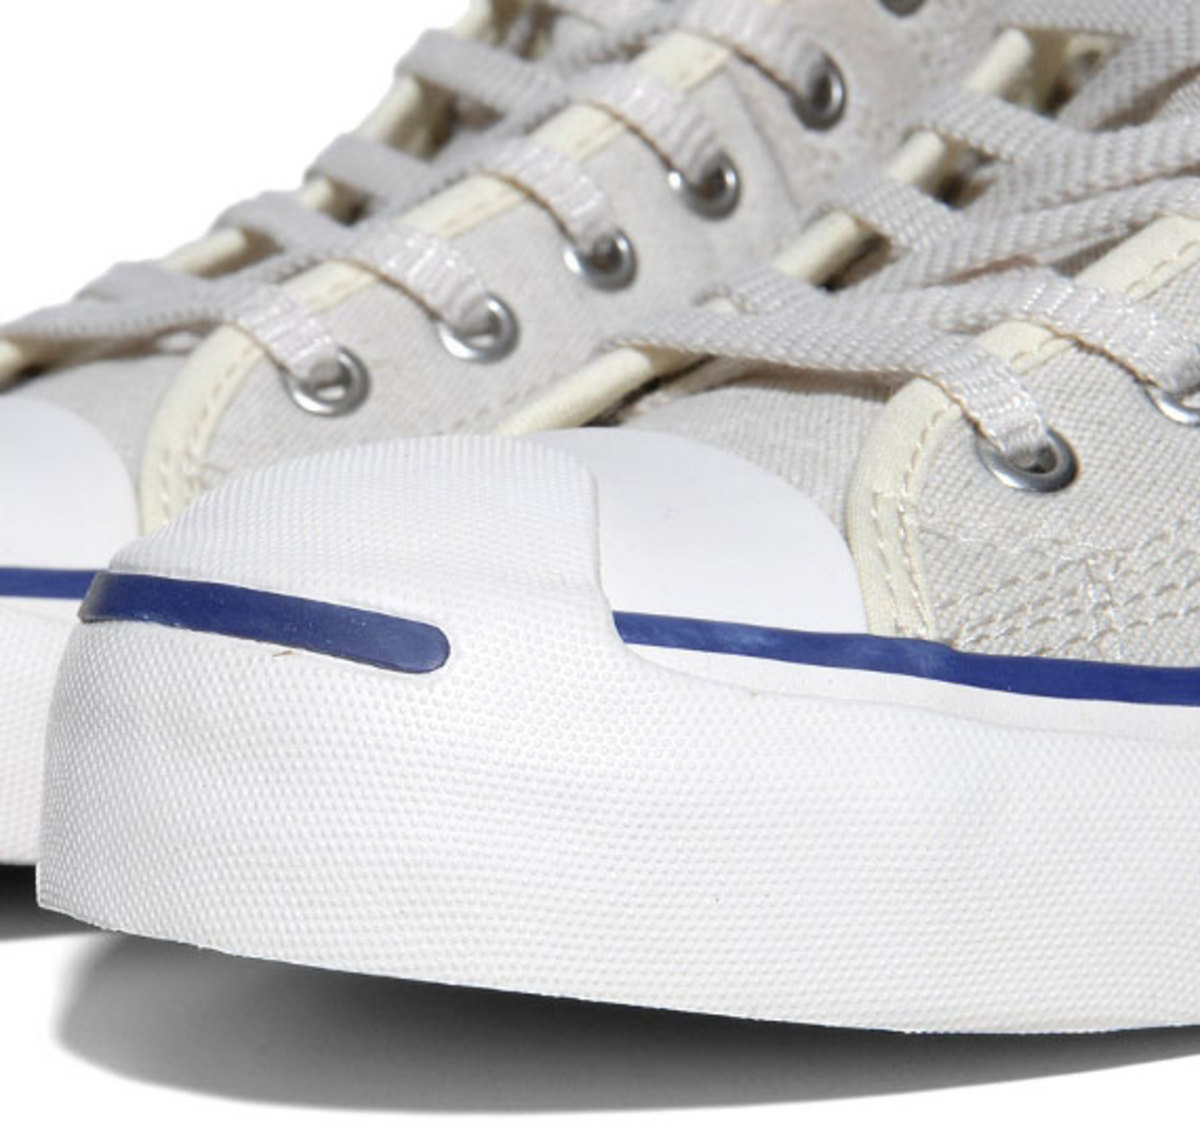 converse-jack-purcell-johnny-14